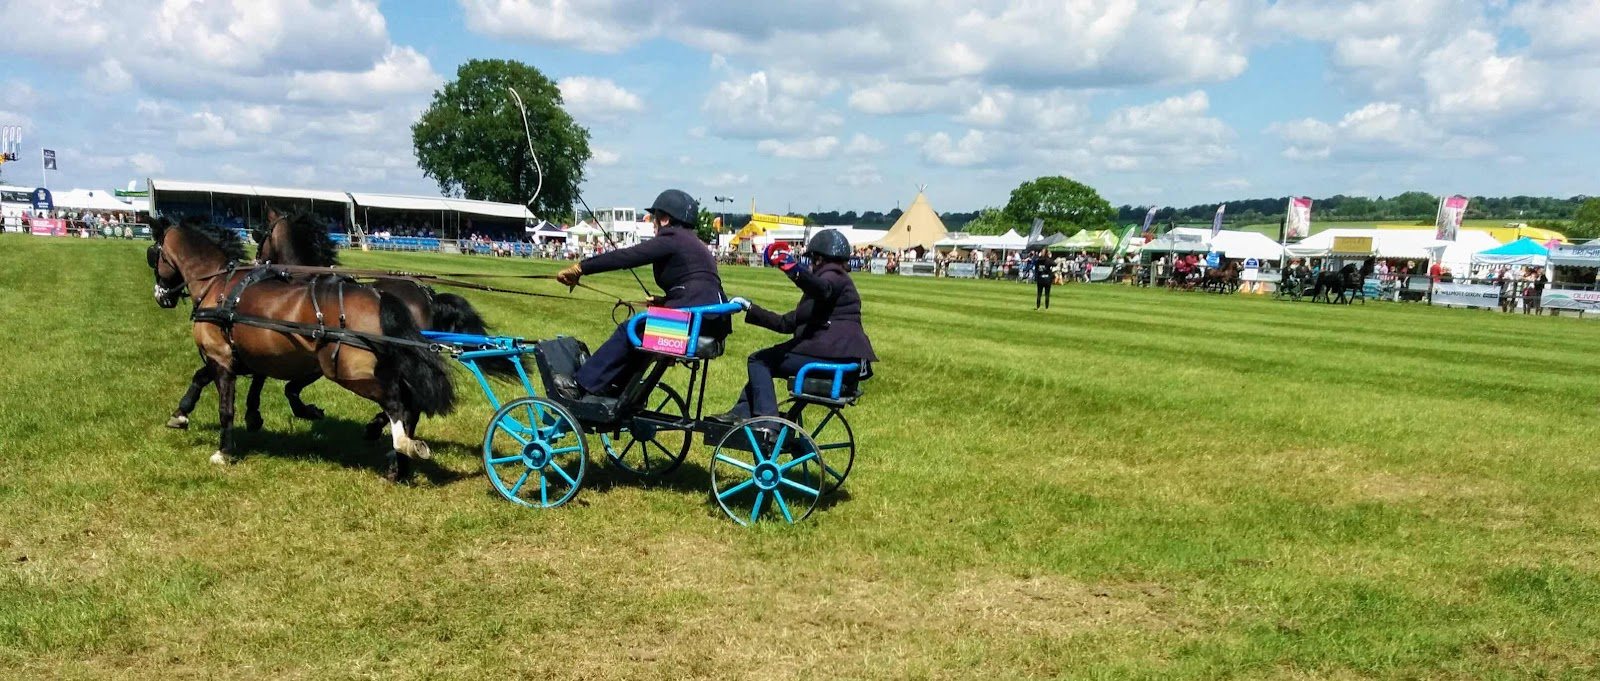 Pony cart at Hertfordshire county show